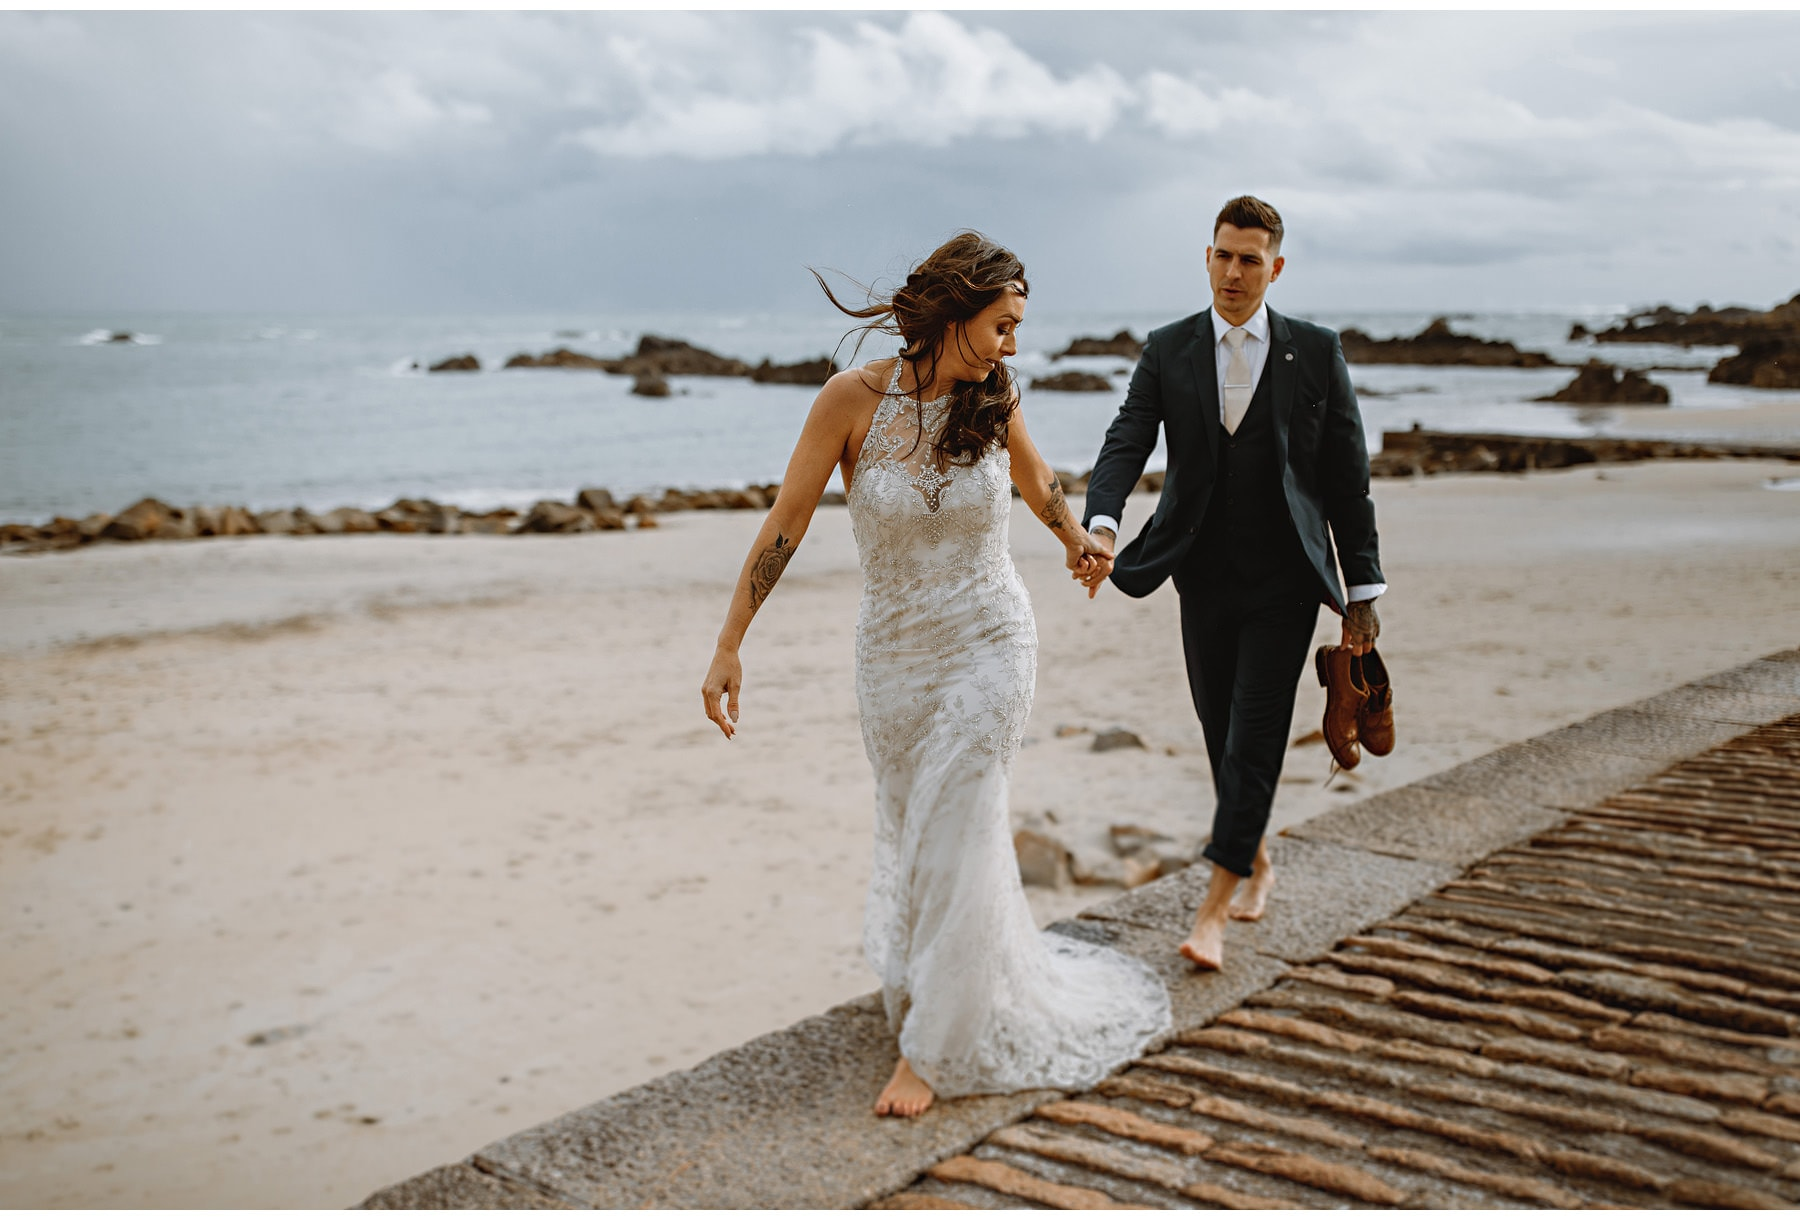 the bride and groom holding hands on the beach as they walk together